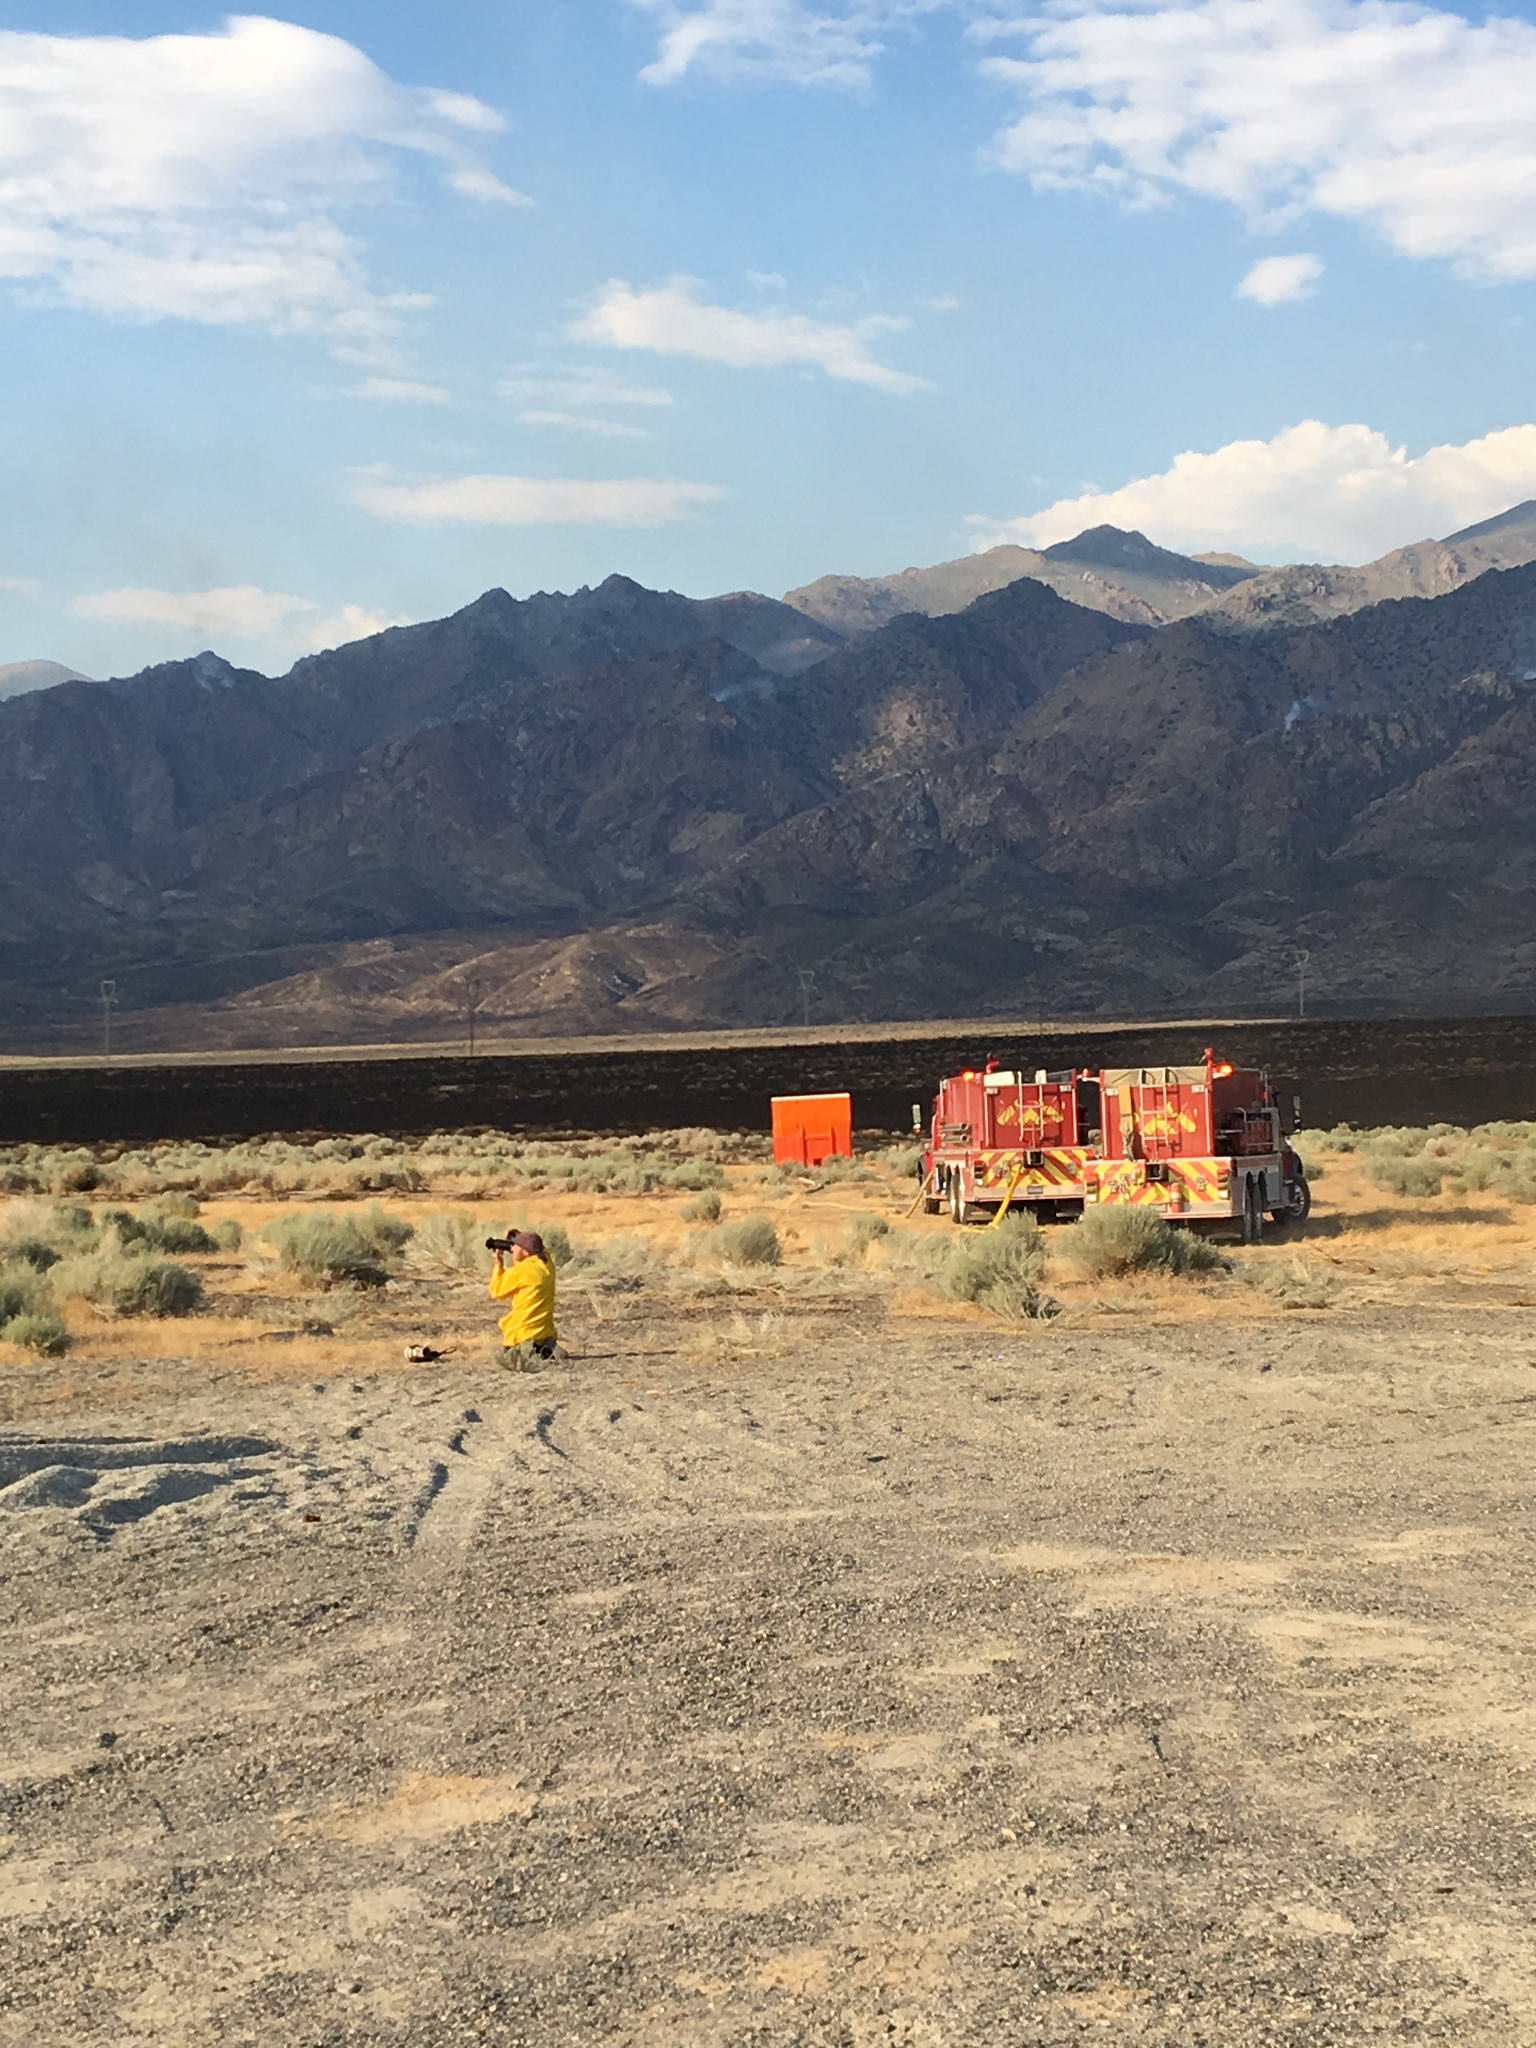 limerick-fire-that-started-july-3-2017-15-miles-northeast-of-lovelock-nevada_35653458701_o